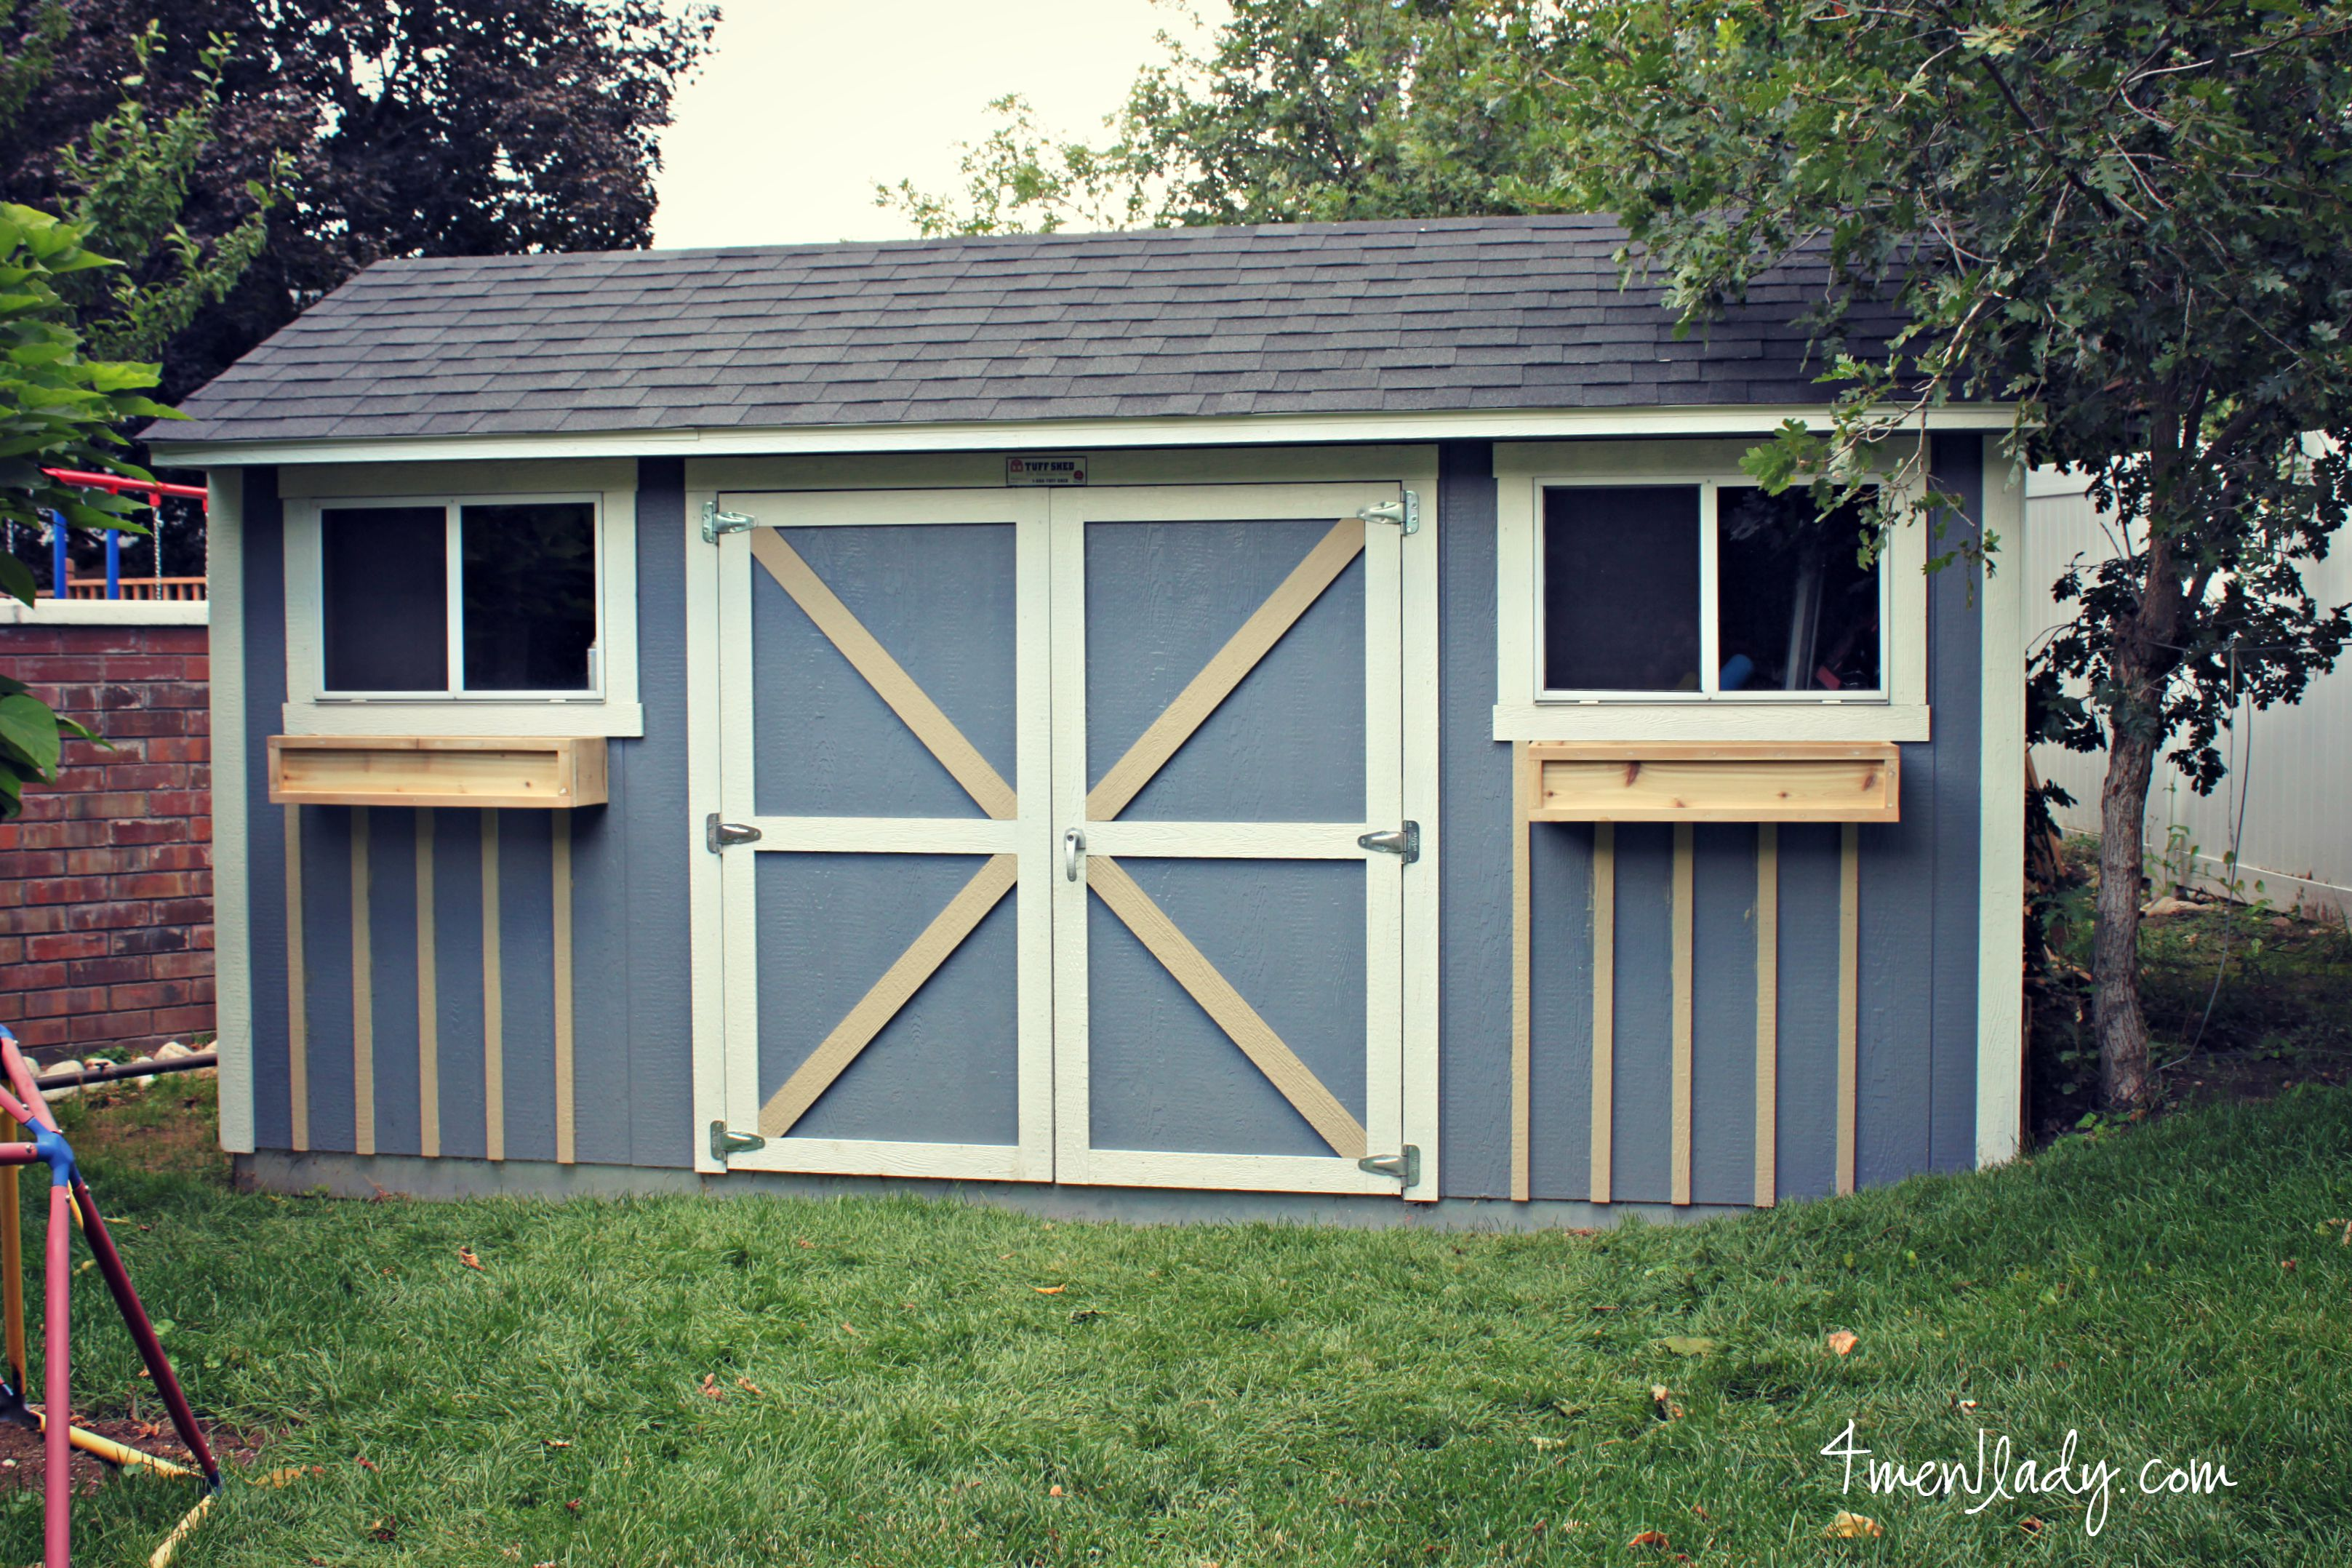 Tuff shed facelift 100 gift card giveaway for Tuff sheds